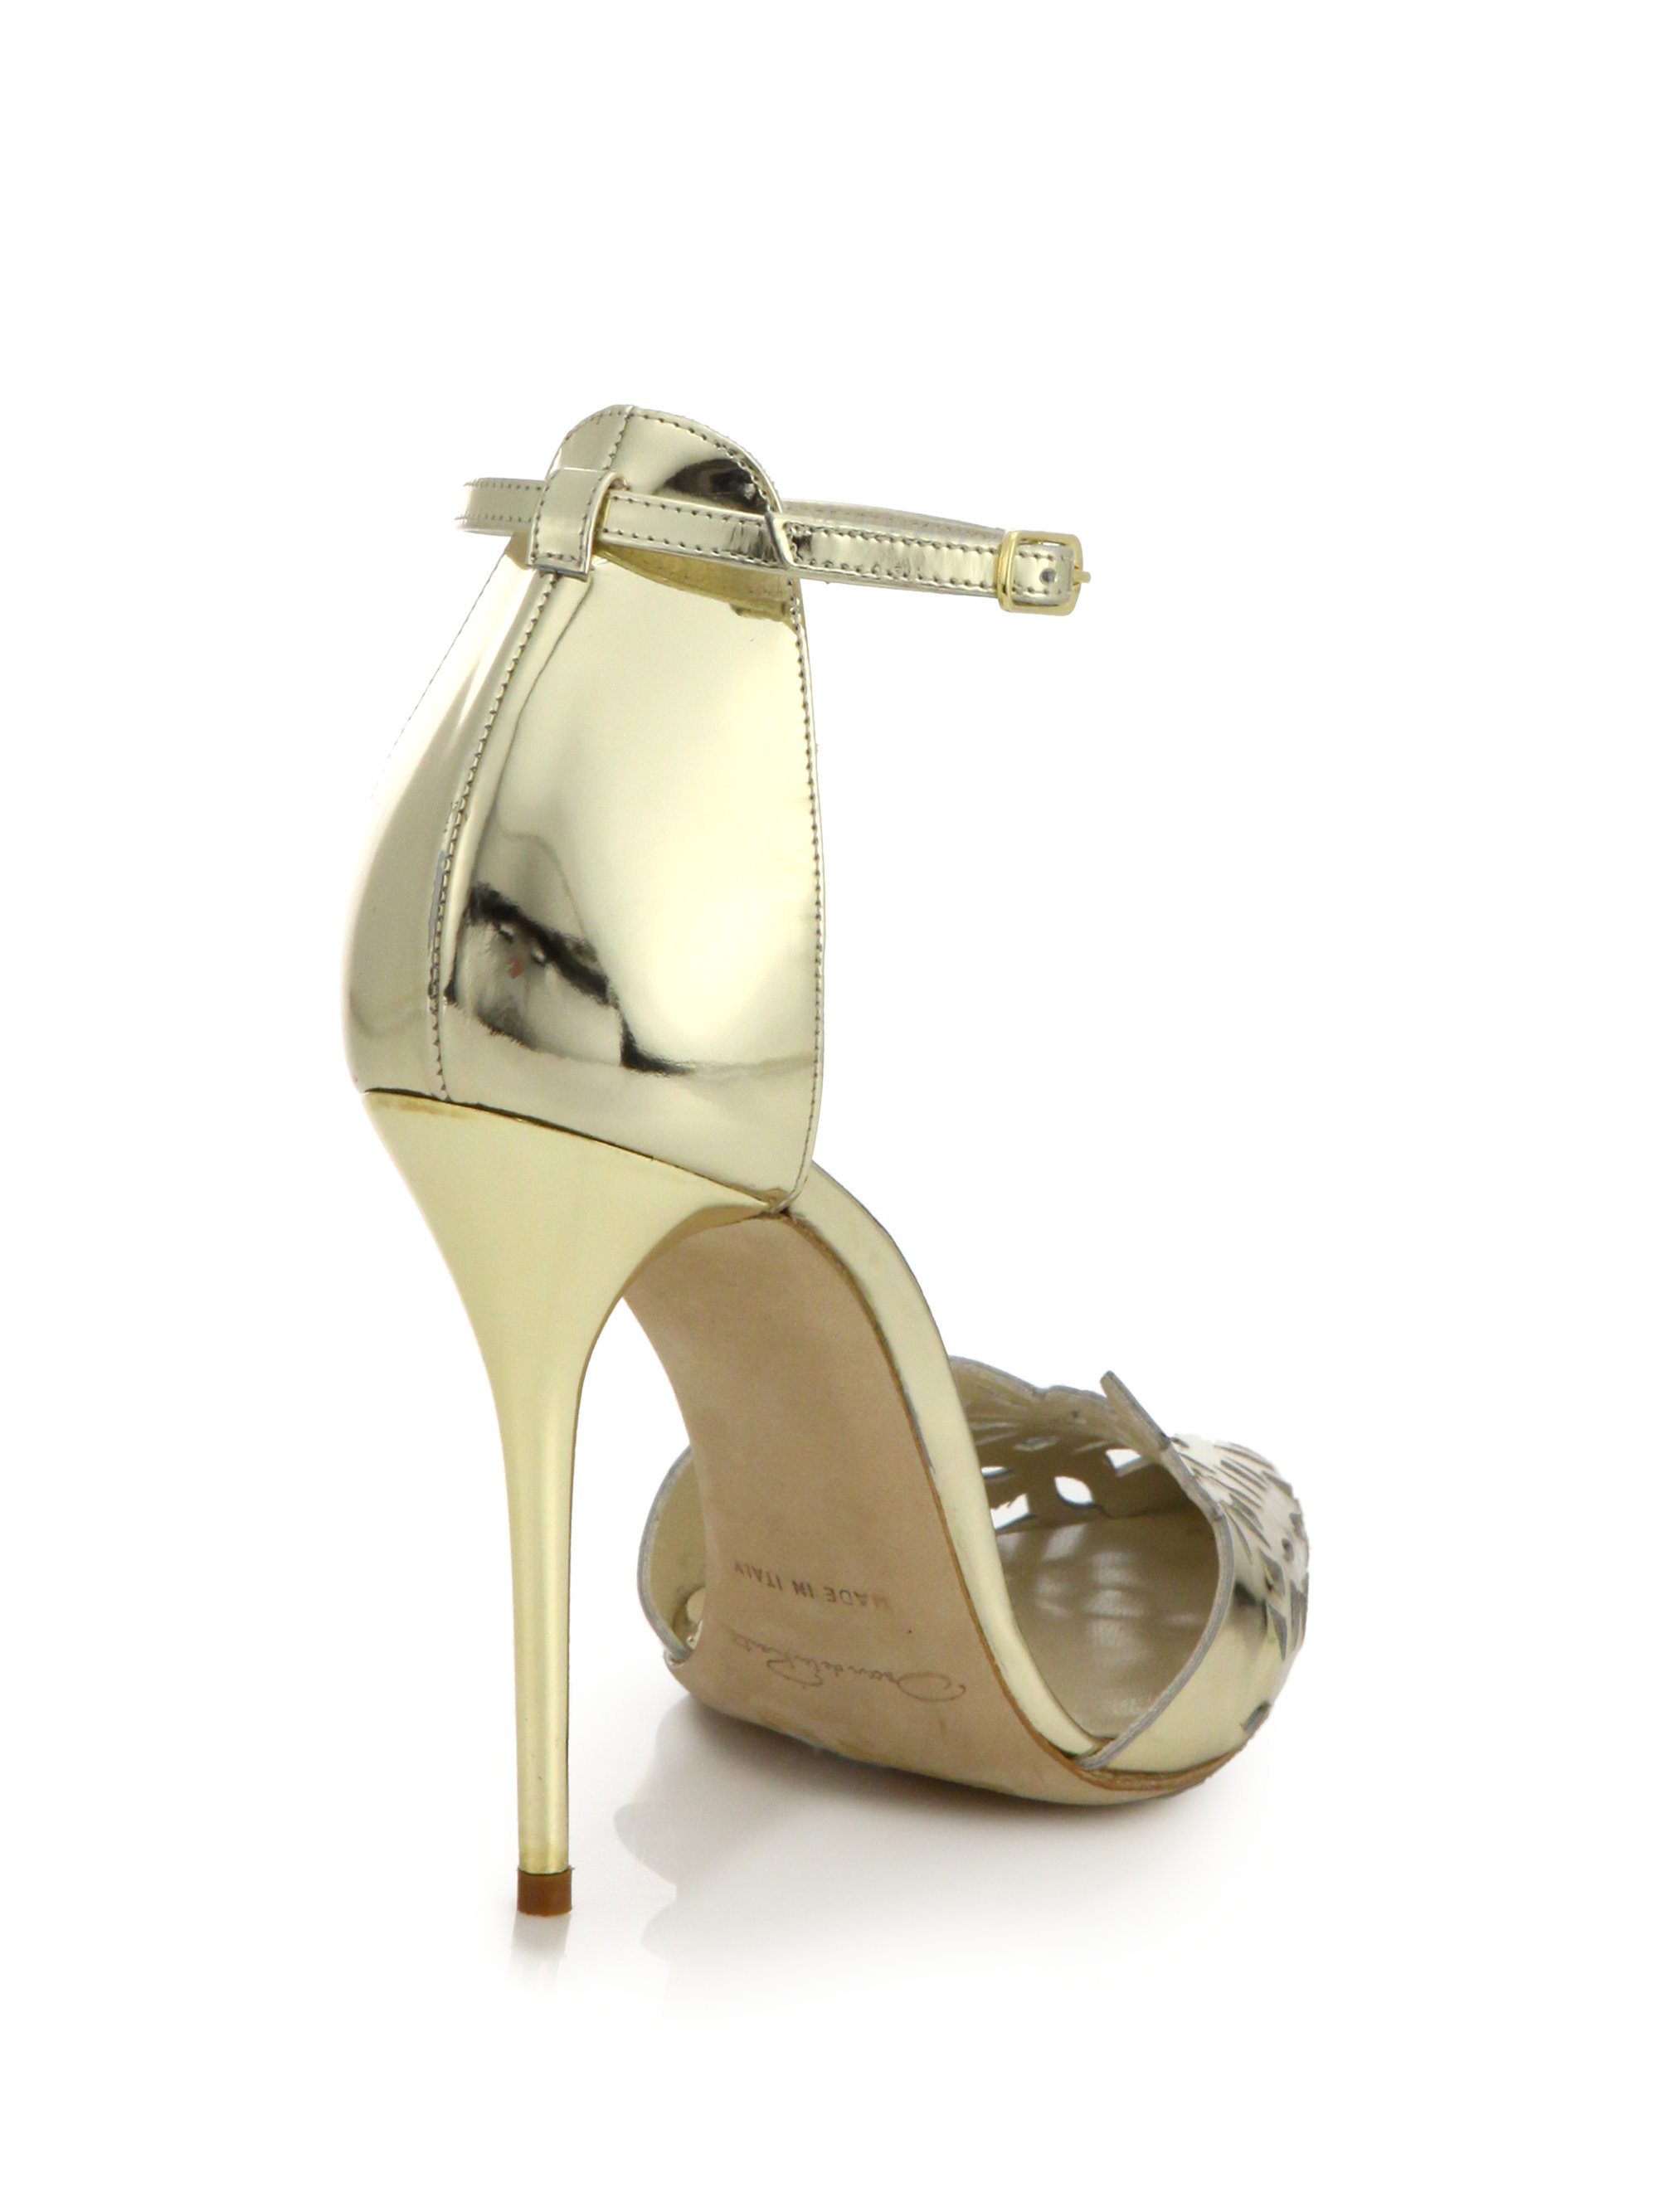 free shipping with paypal clearance 100% authentic Oscar de la Renta Leather Laser Cut Pumps free shipping outlet buy cheap with paypal vOkgymL